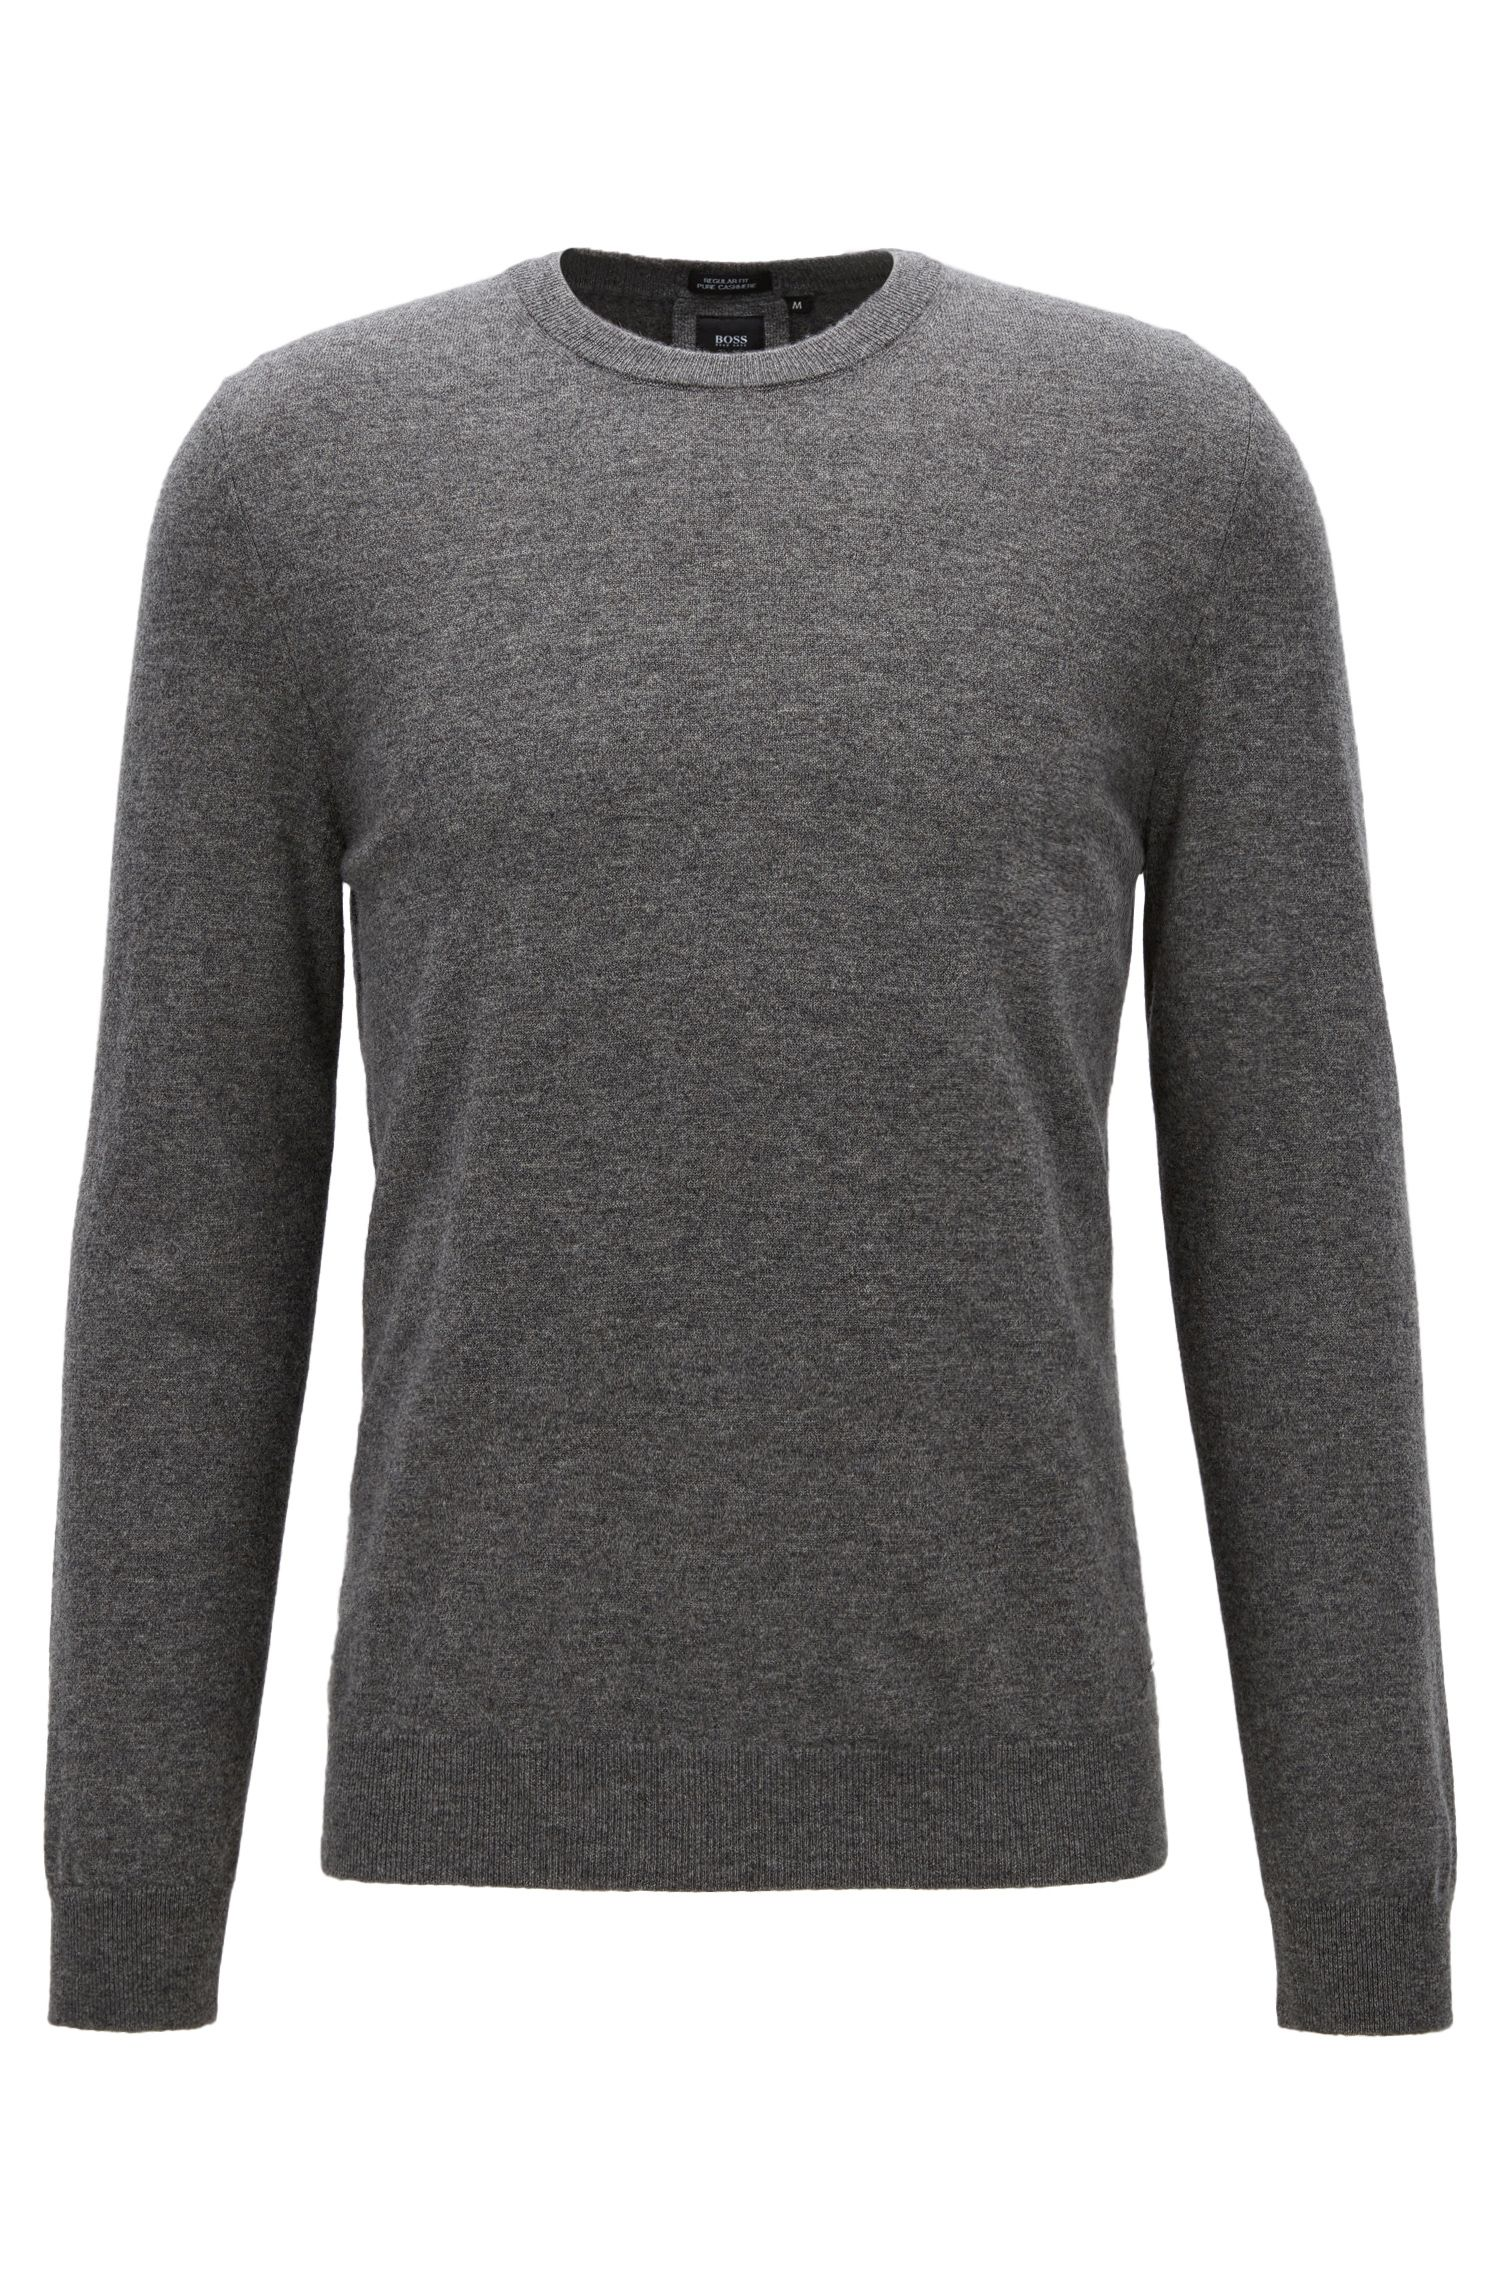 Lightweight sweater in Italian cashmere